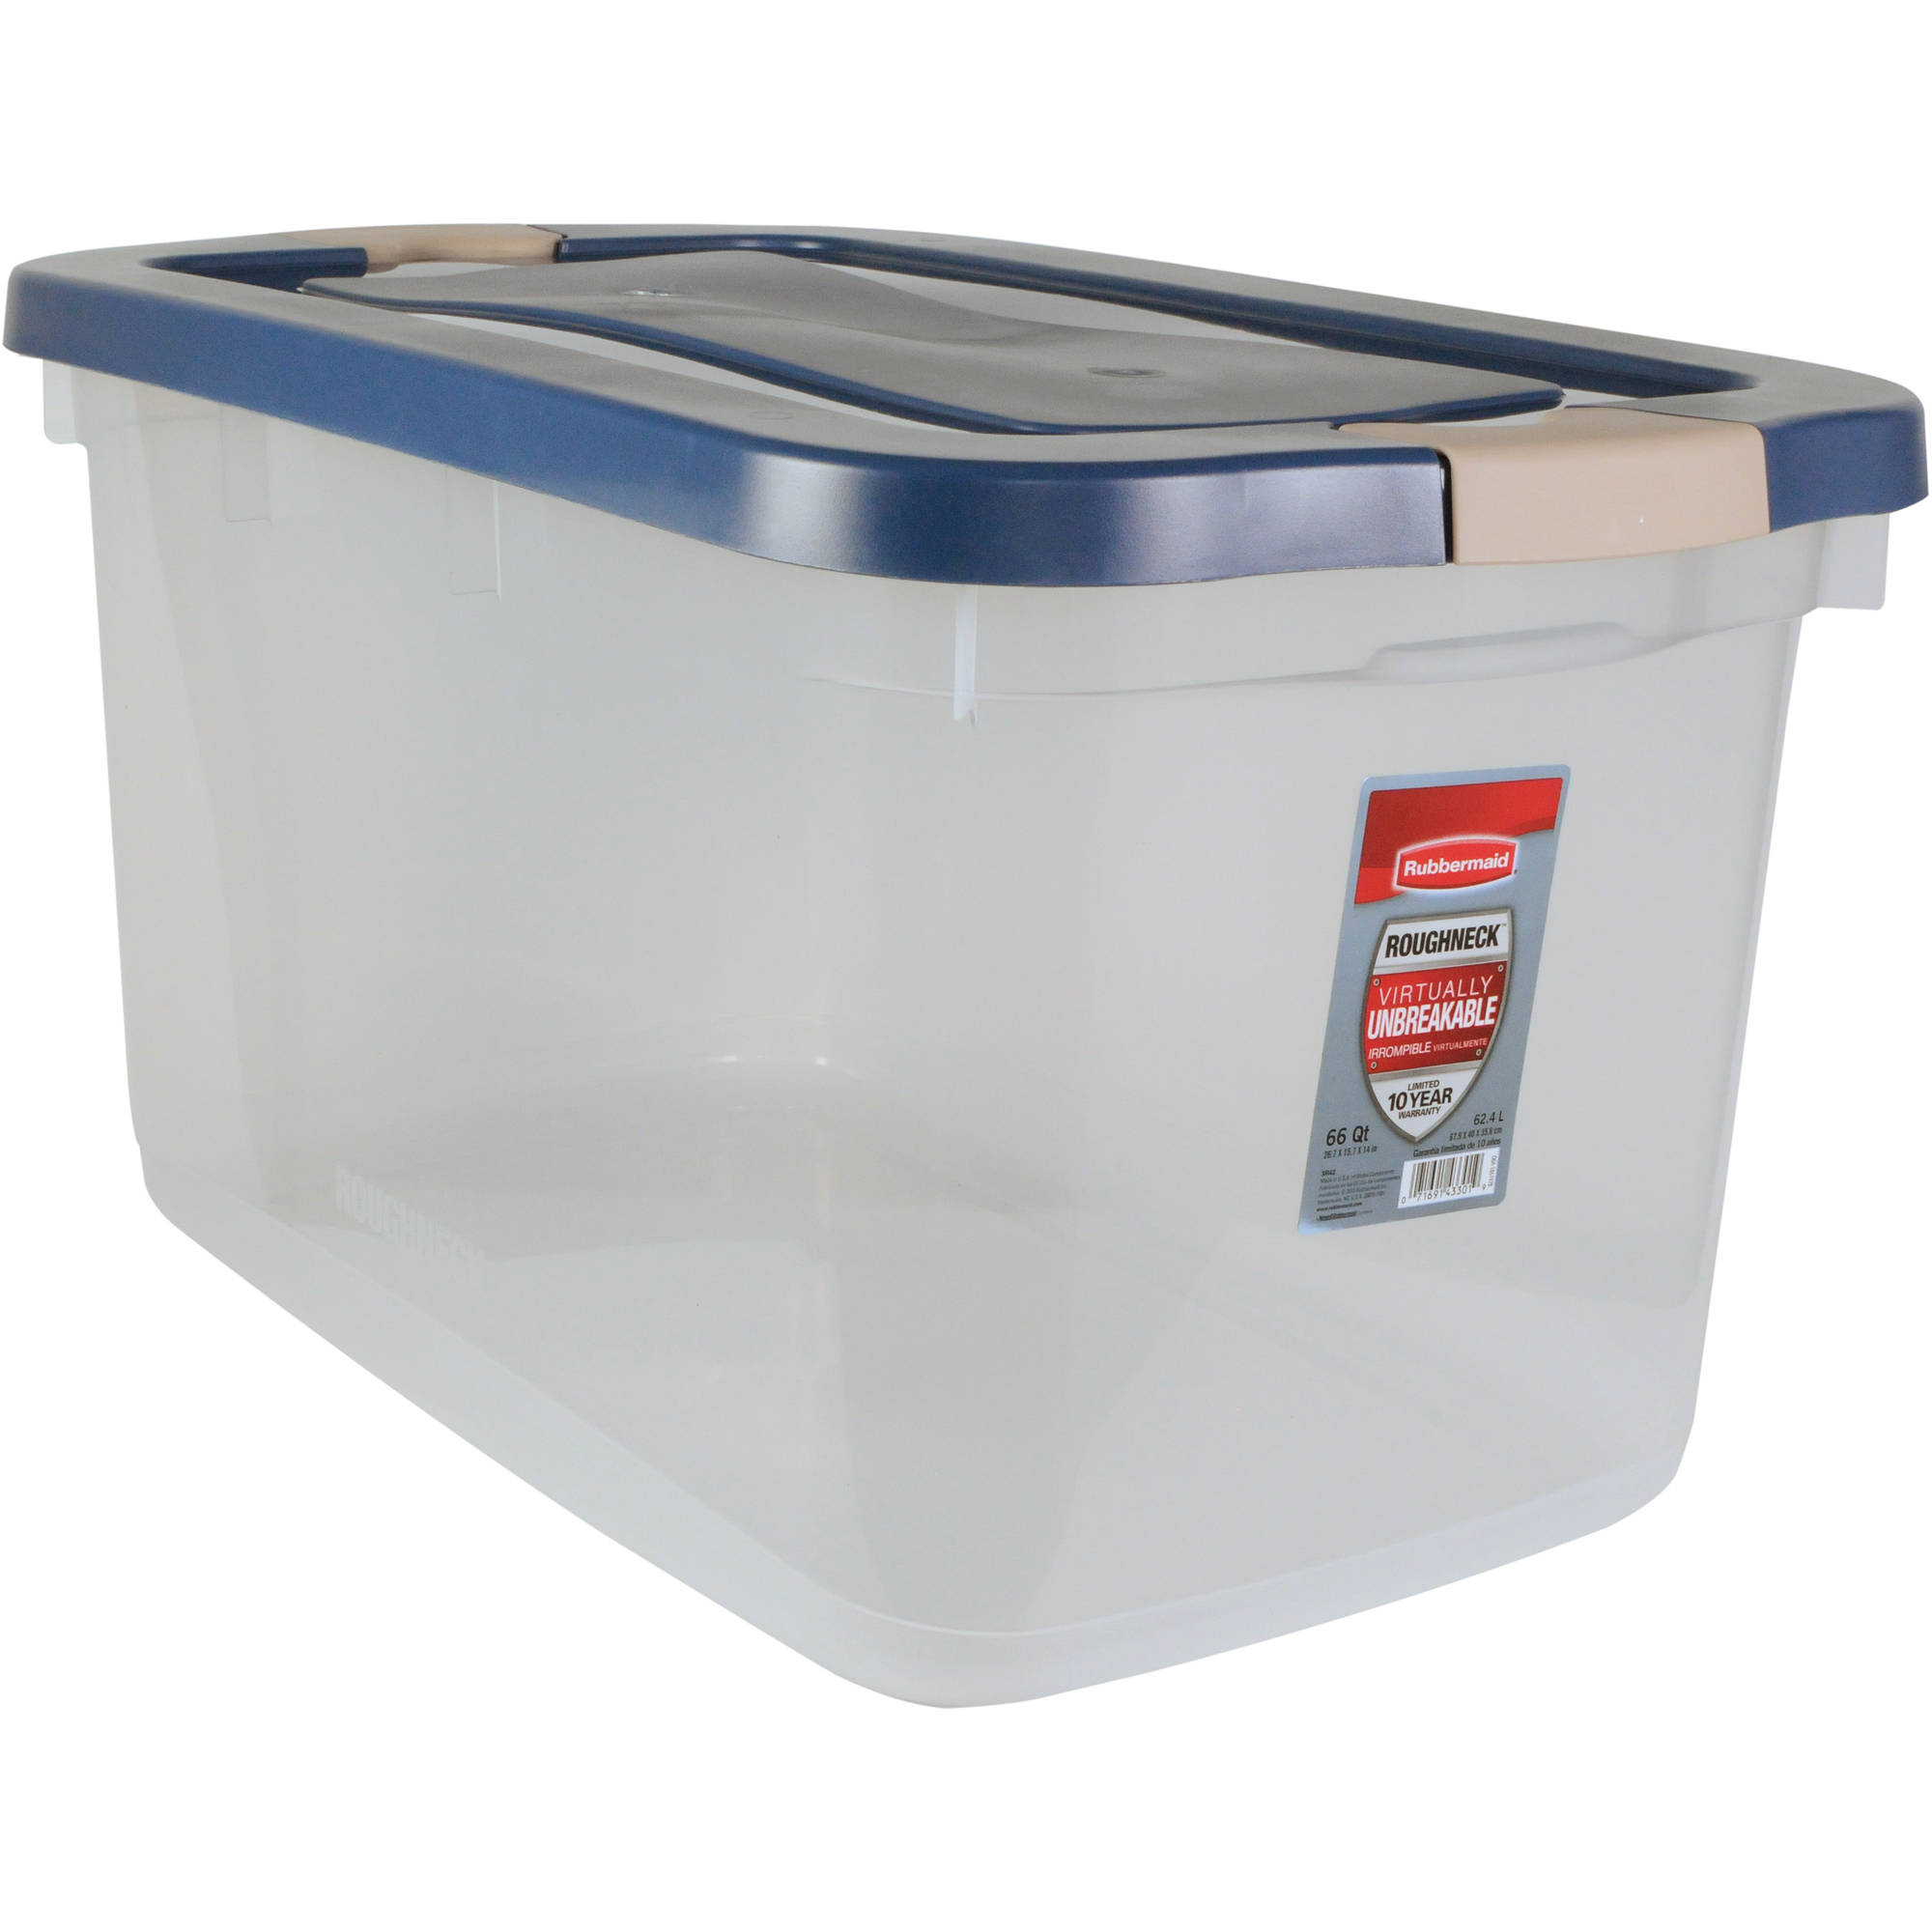 Rubbermaid Roughneck 66 Qt. (16.5 Gal) Clear Storage Tote Bin Clear with Blue Lid - Walmart.com  sc 1 st  Walmart : rubbermaid roughneck storage box  - Aquiesqueretaro.Com